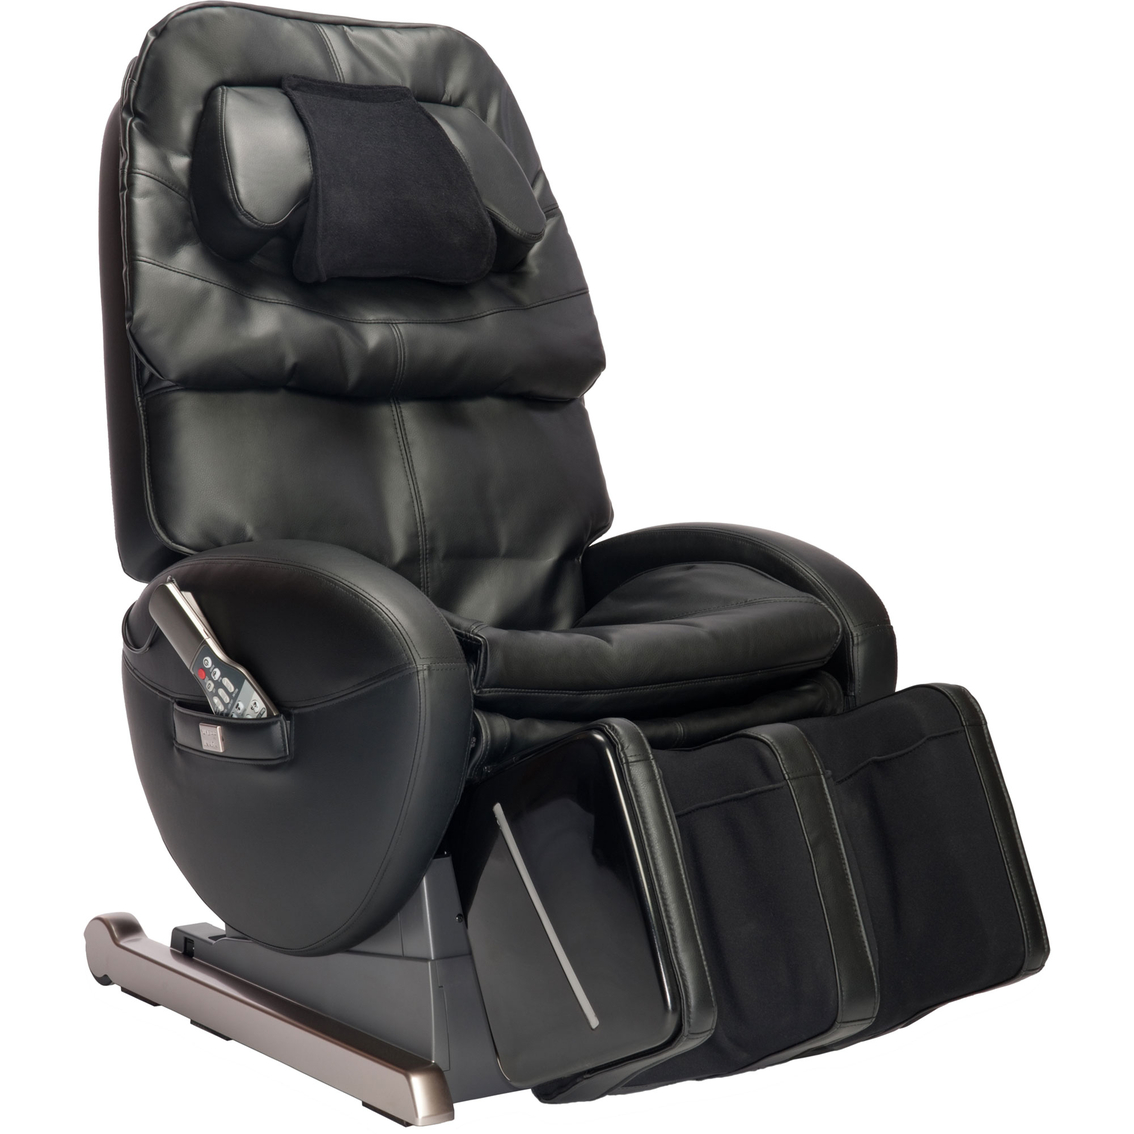 Inada Chair Inada Yume Rocking Massage Chair Black Chairs